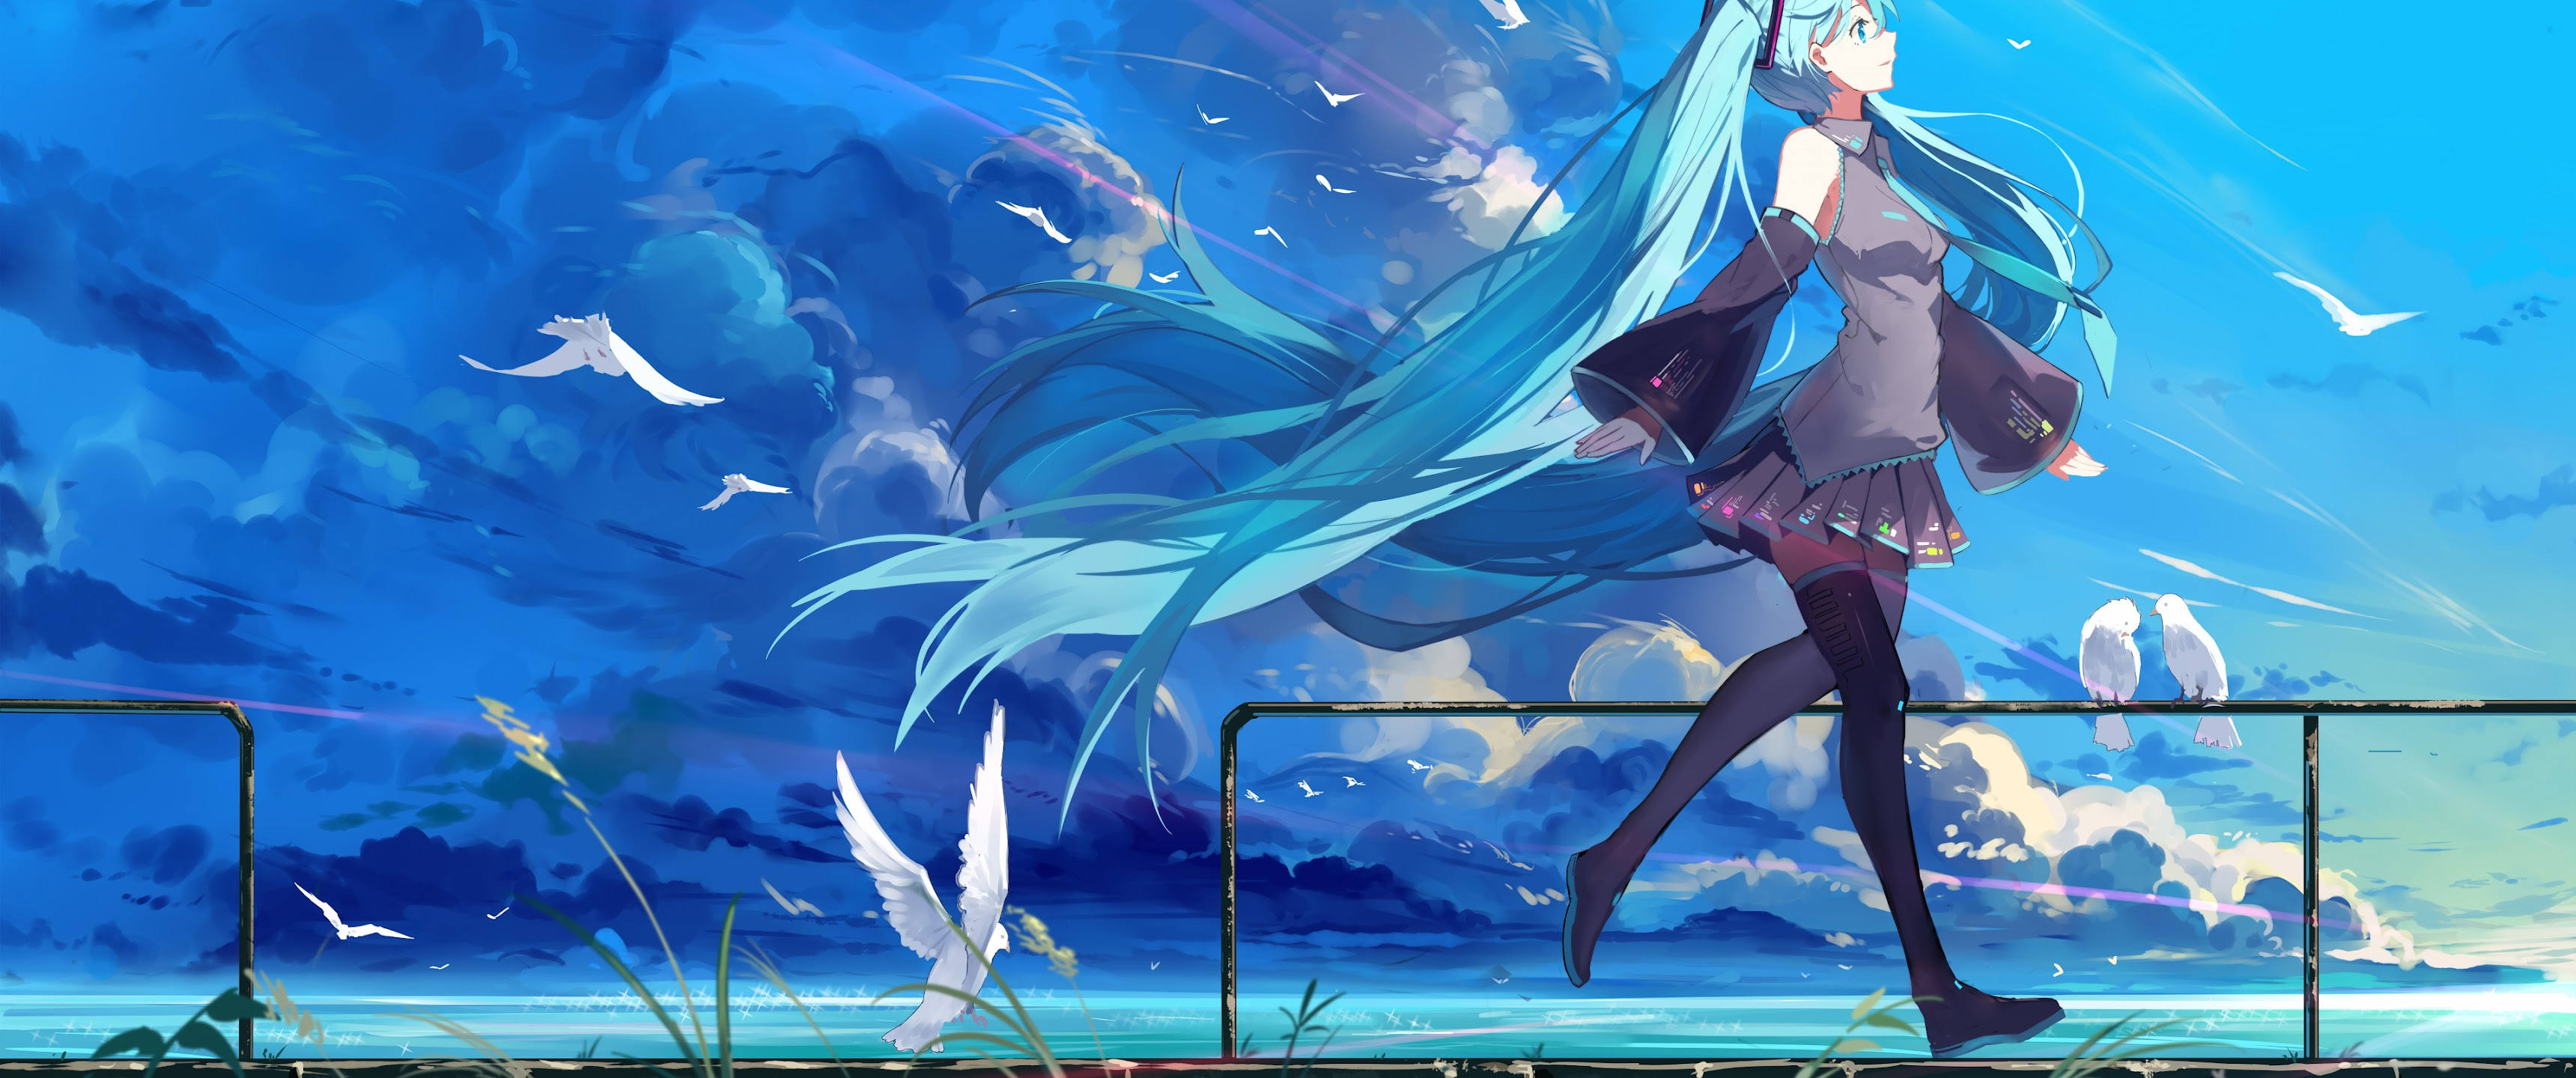 Hatsune Miku Anime Girl 4k Wallpaper 190